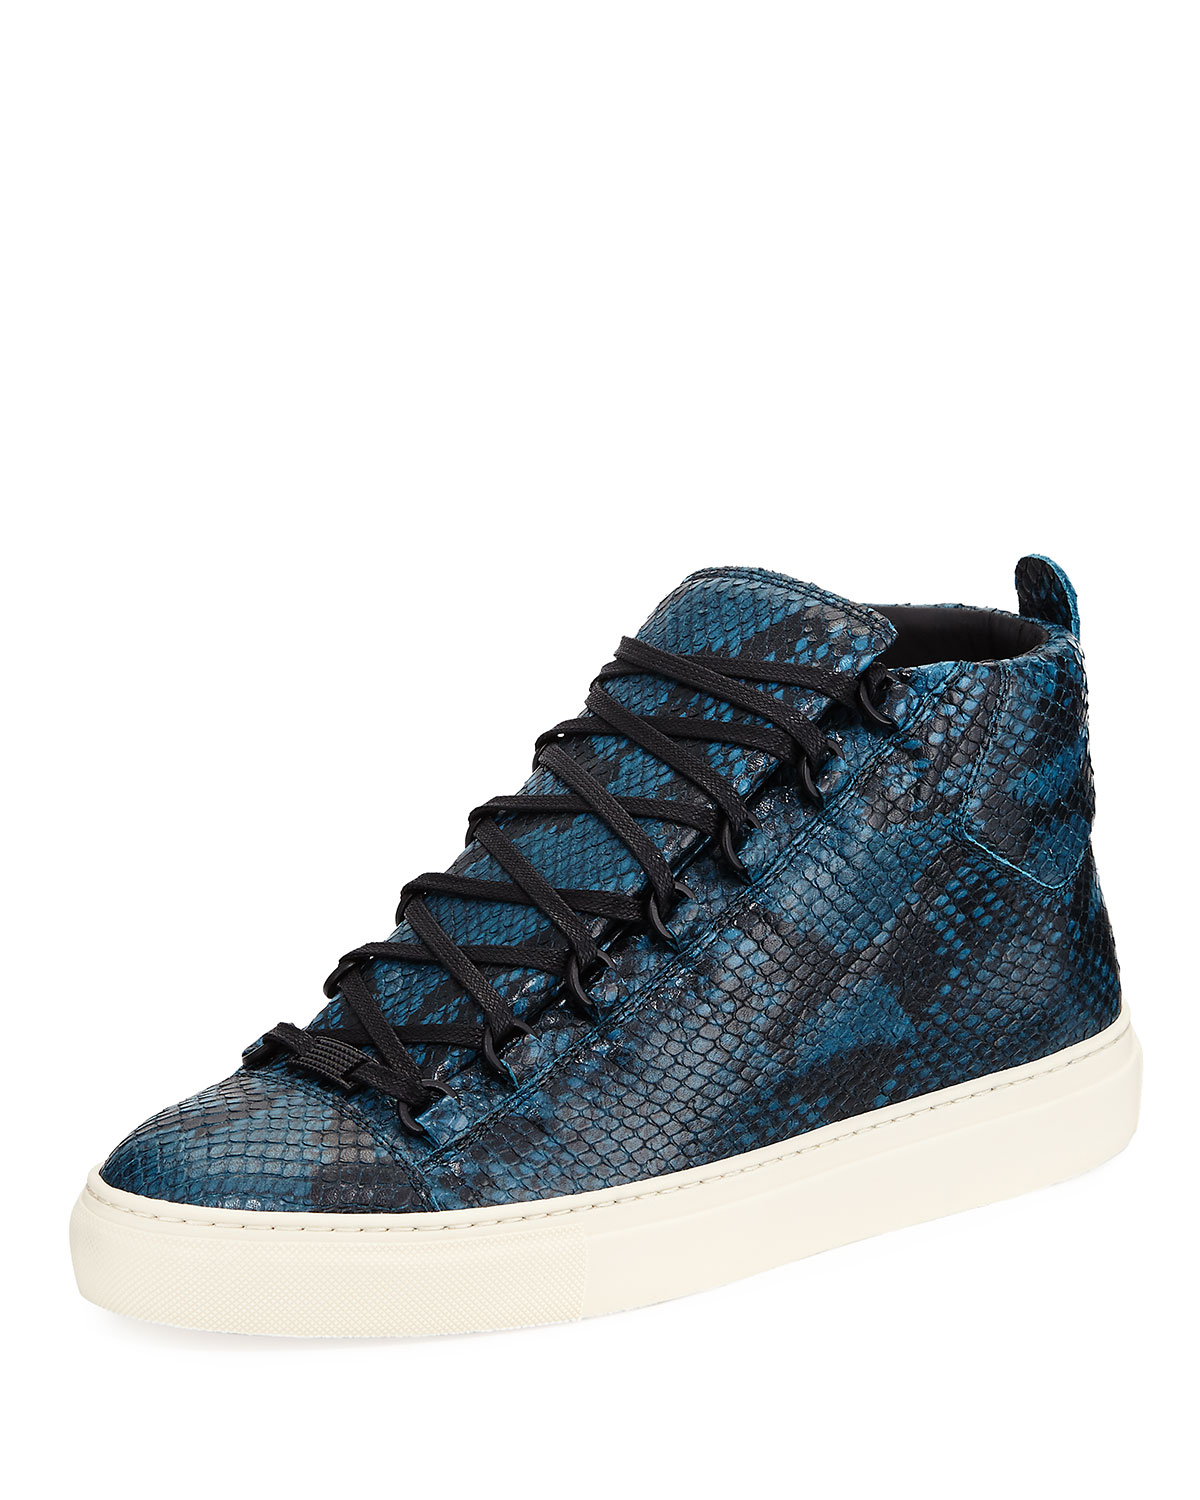 2020077836a5 Balenciaga Men s Arena Python-Embossed Leather High-Top Sneaker ...